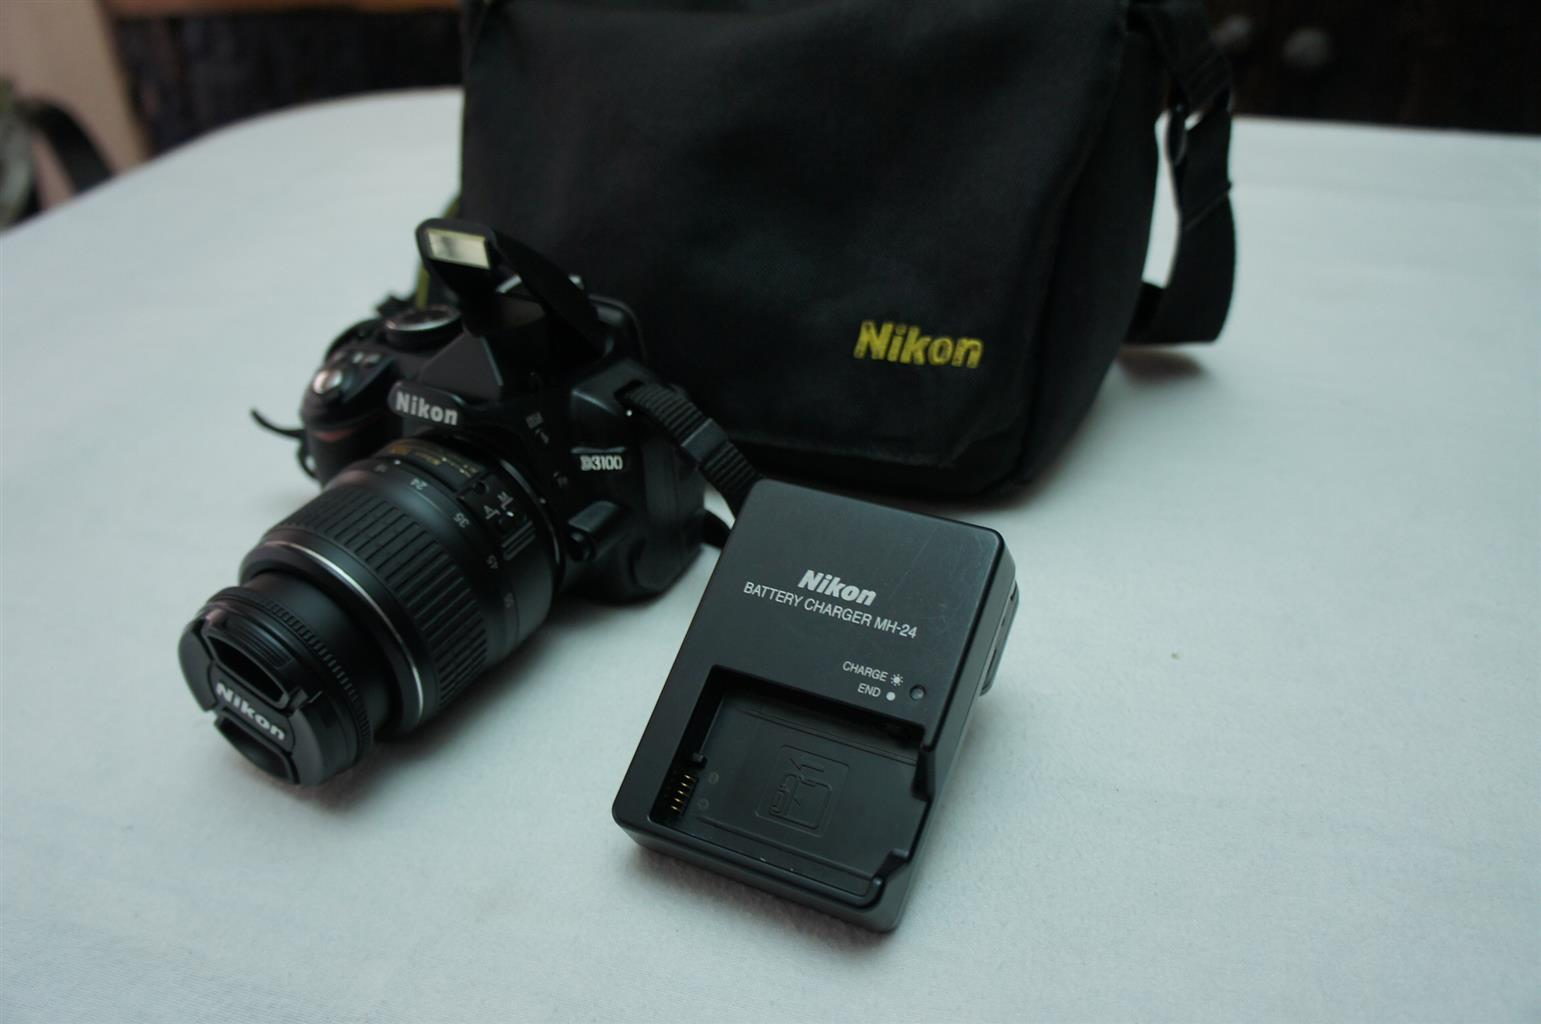 Nikon D3100 SLR camera with Twin Lens in mint condition